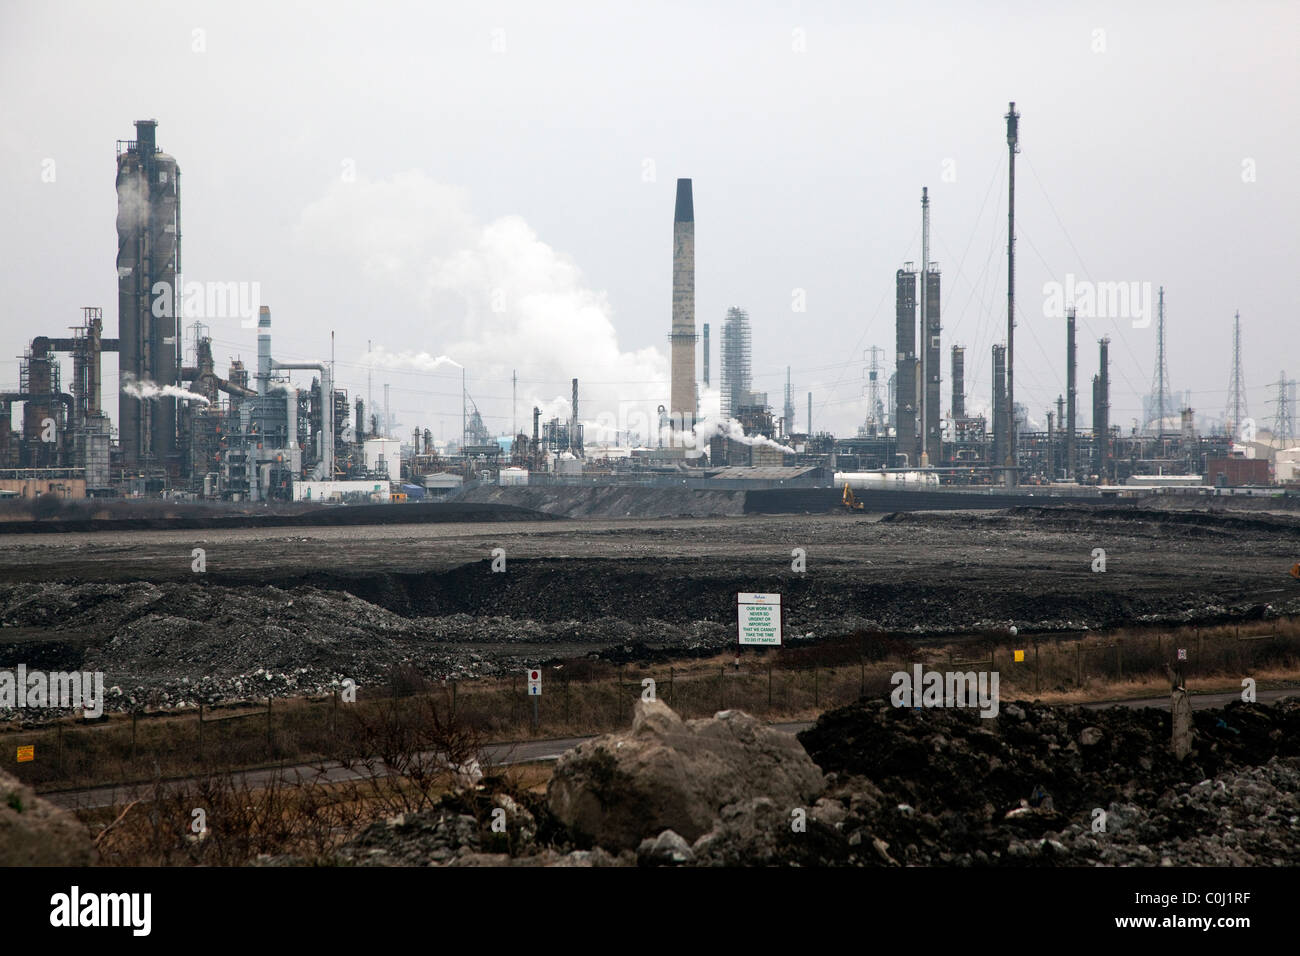 Petro-chemical works on Teesside, England - Stock Image